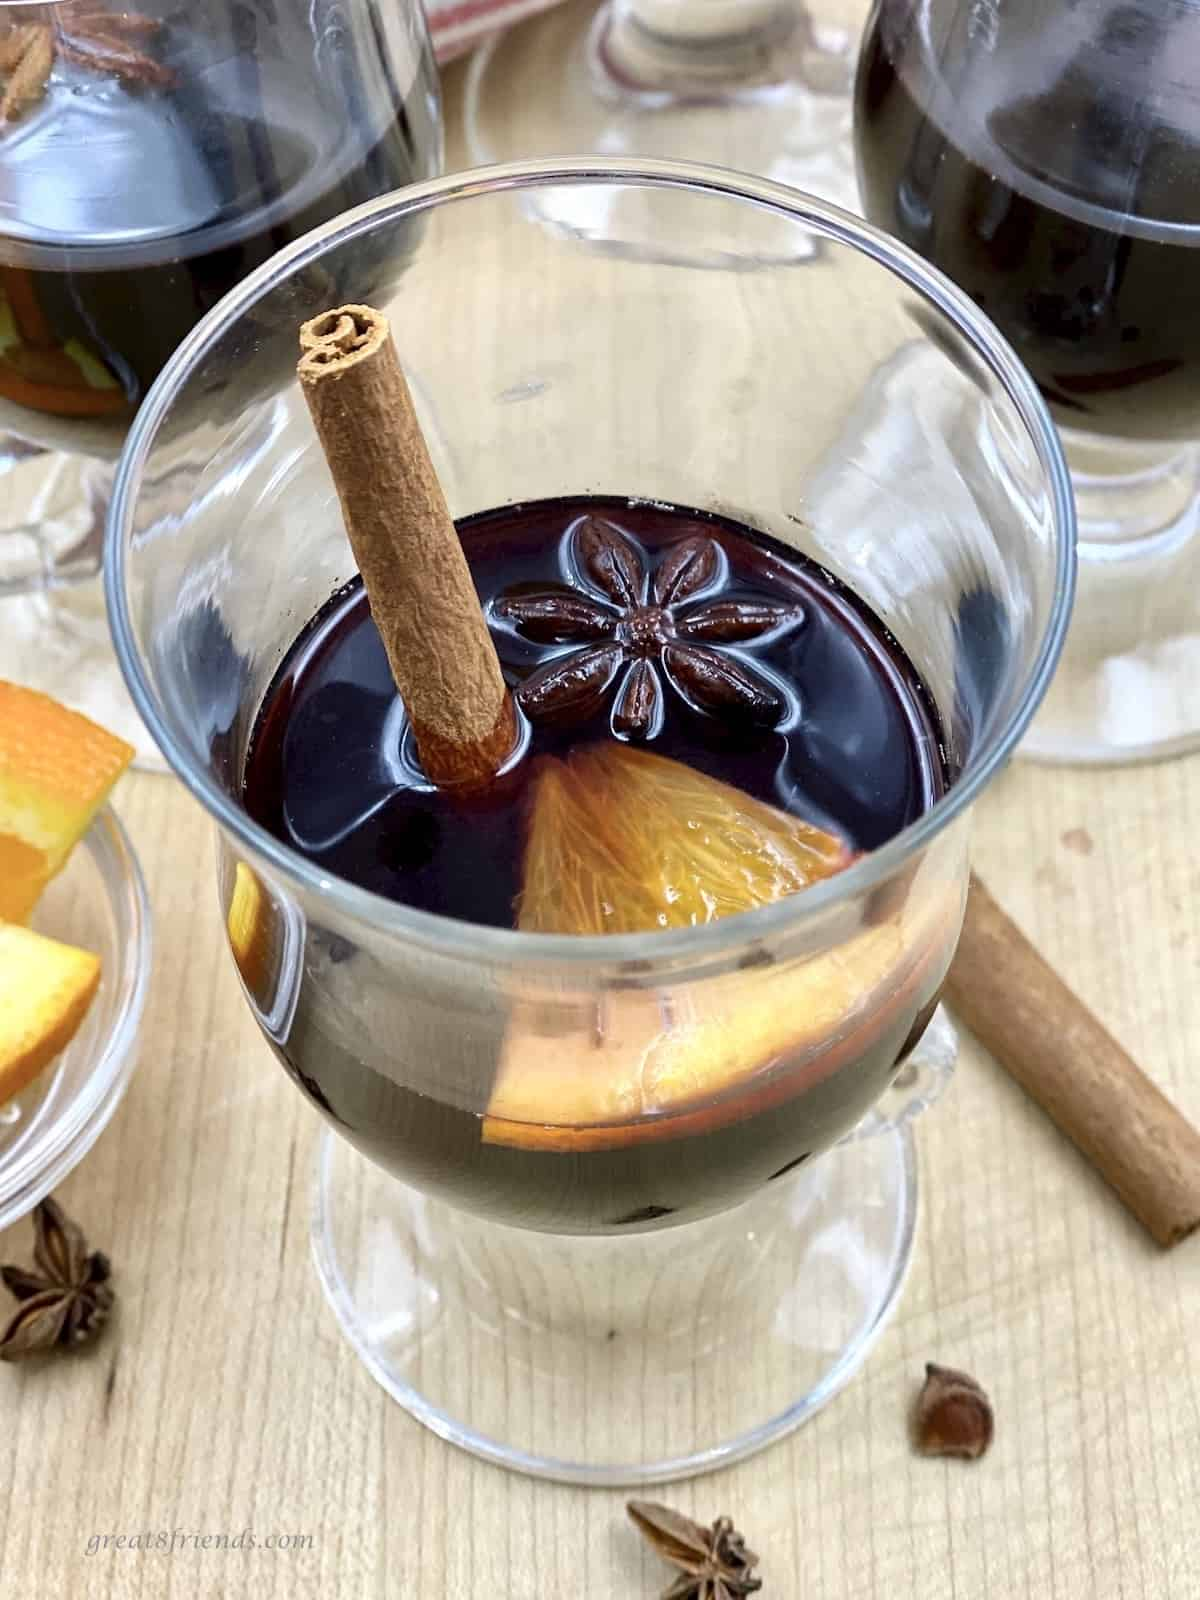 Glass cup with warm red wine garnished with a cinnamon stick, star anise and an orange slice.